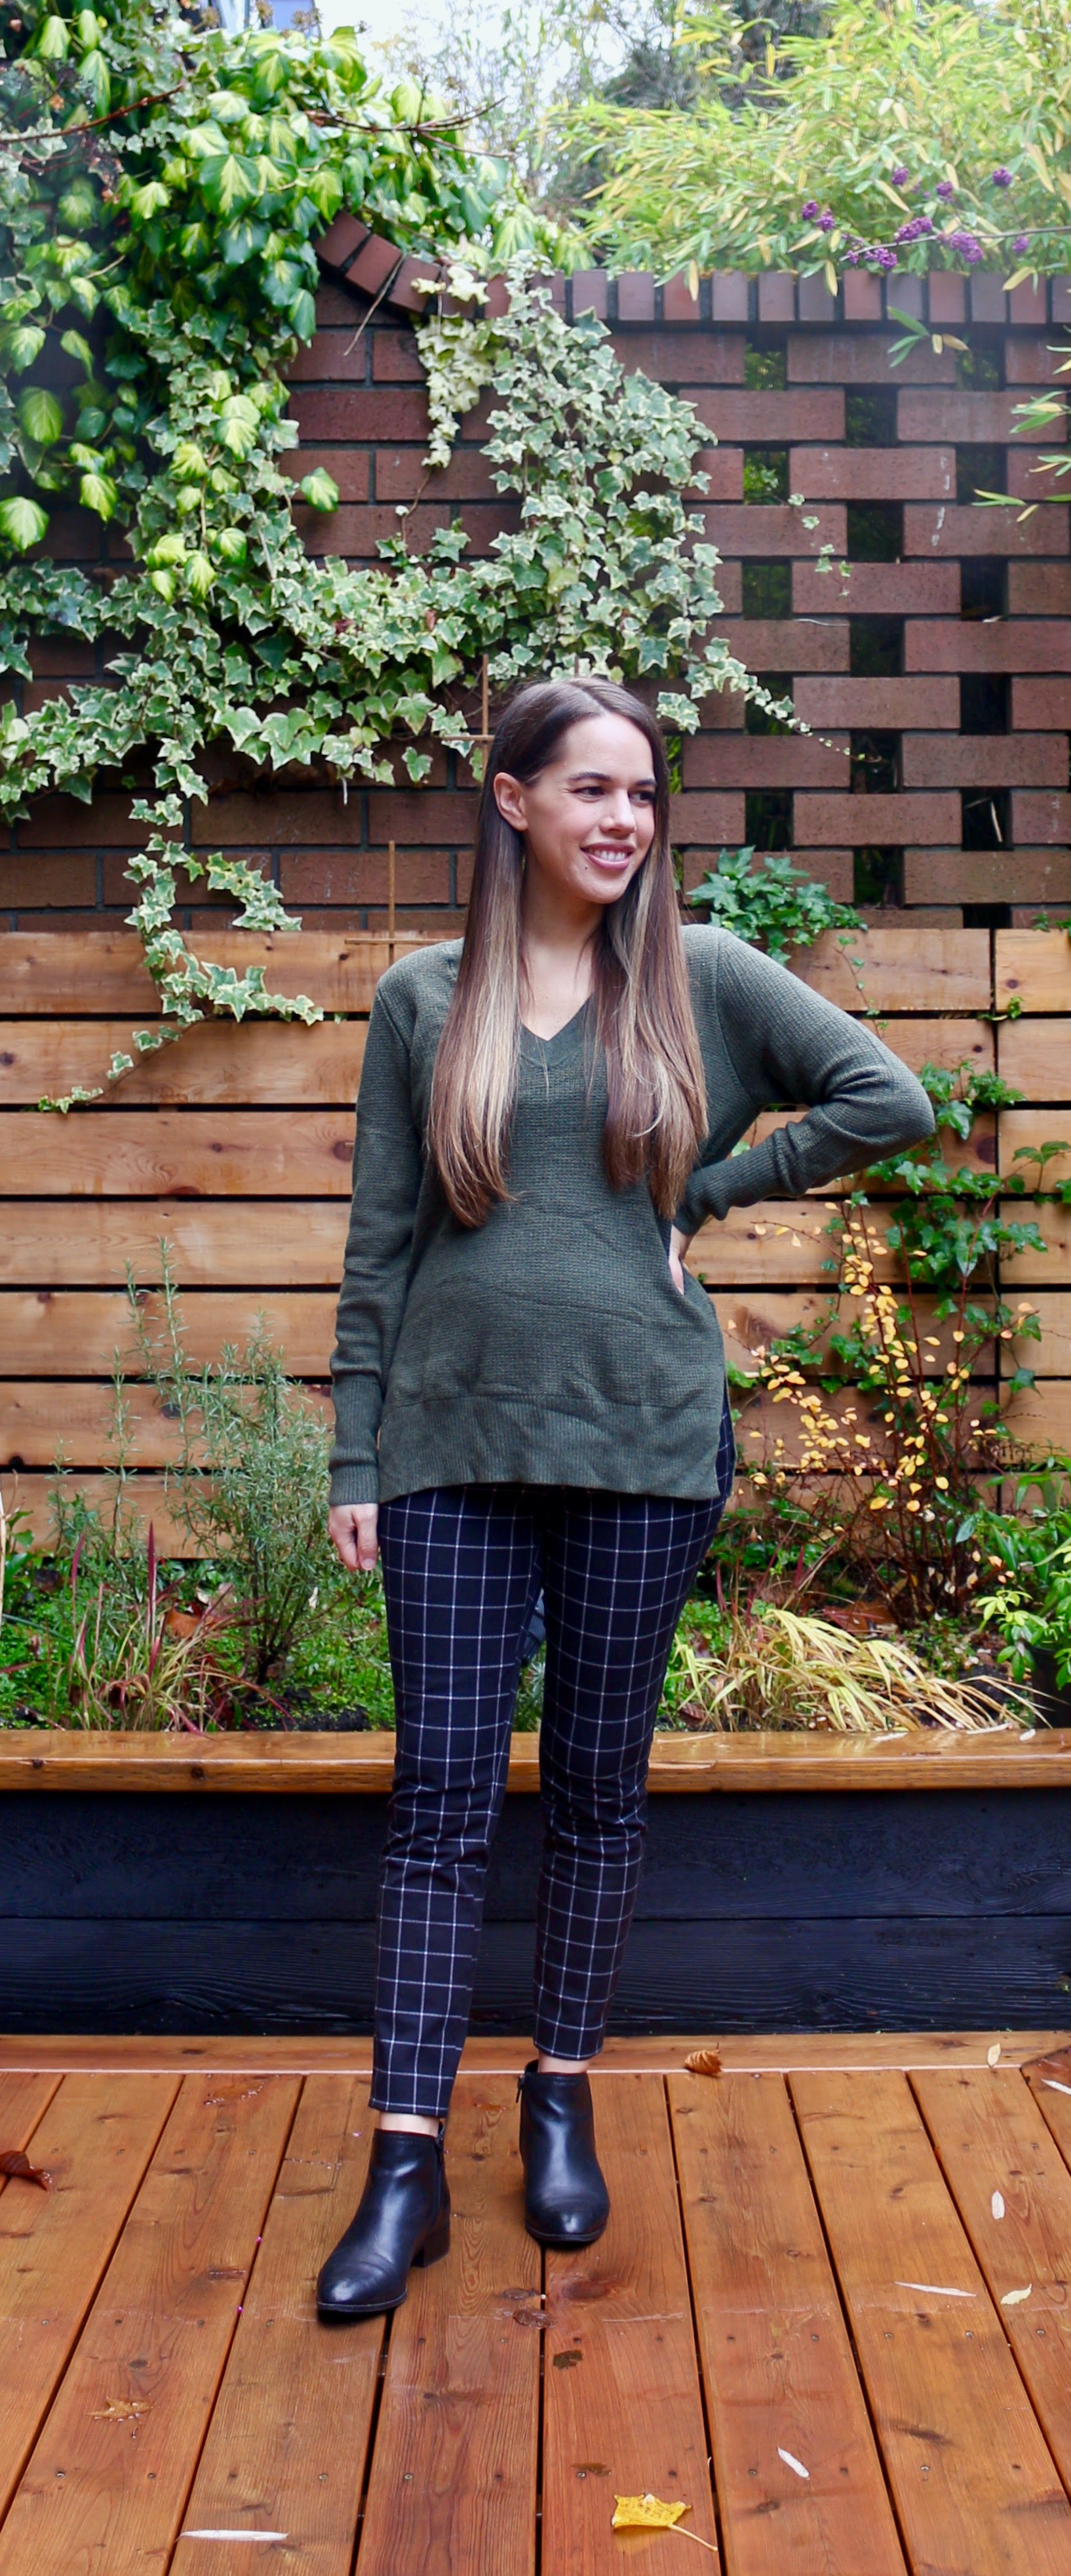 Jules in Flats - Gap True Soft V-Neck Sweater with Pixie Maternity Windowpane Pants (Business Casual Workwear on a Budget)